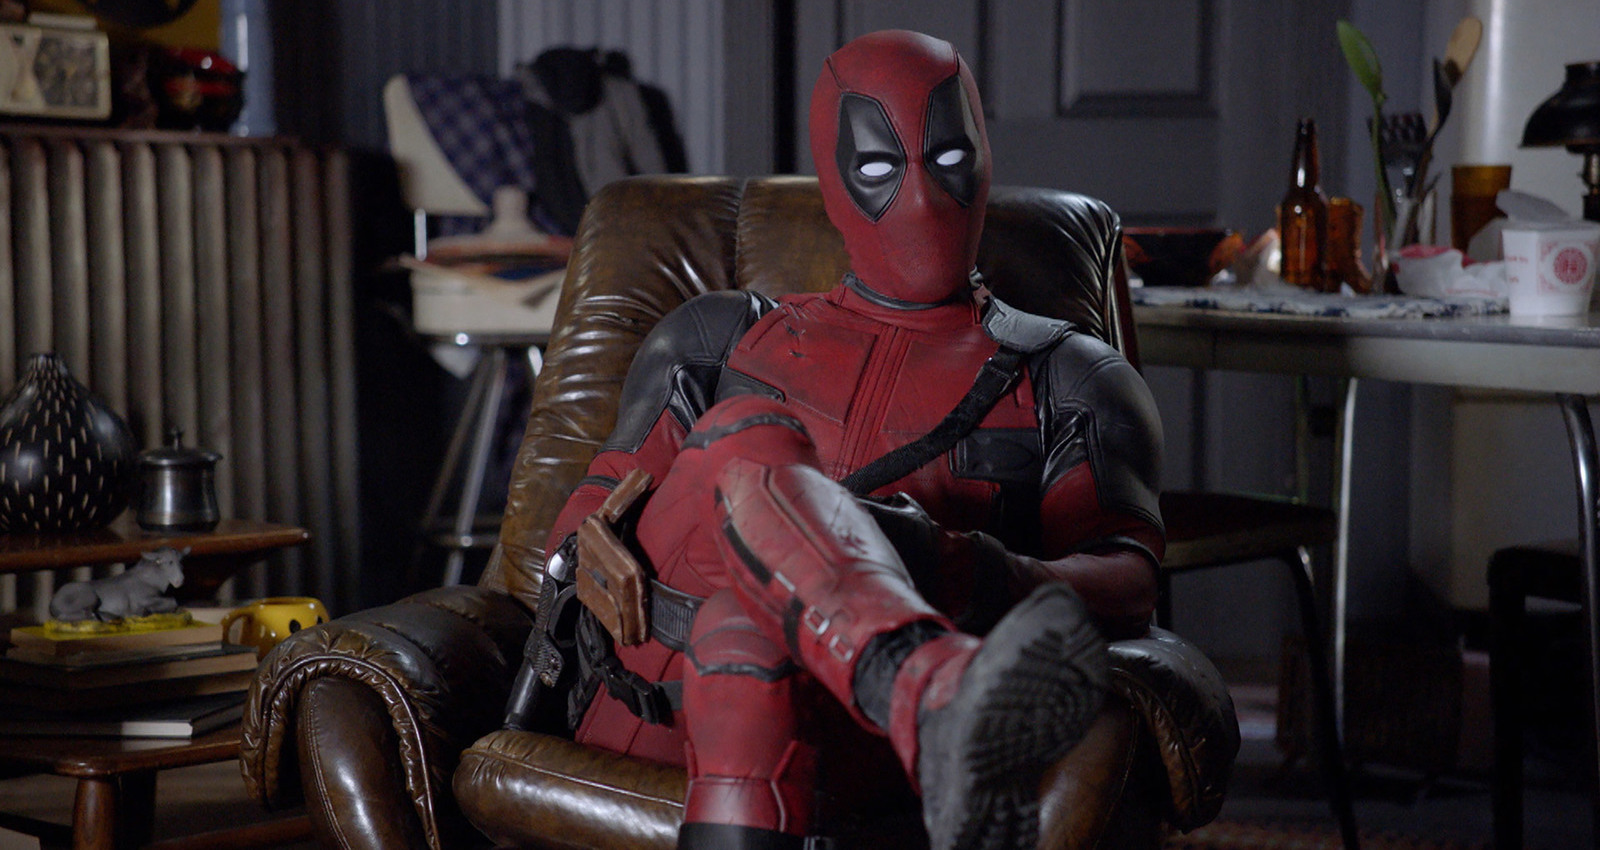 From Deadpool With Love